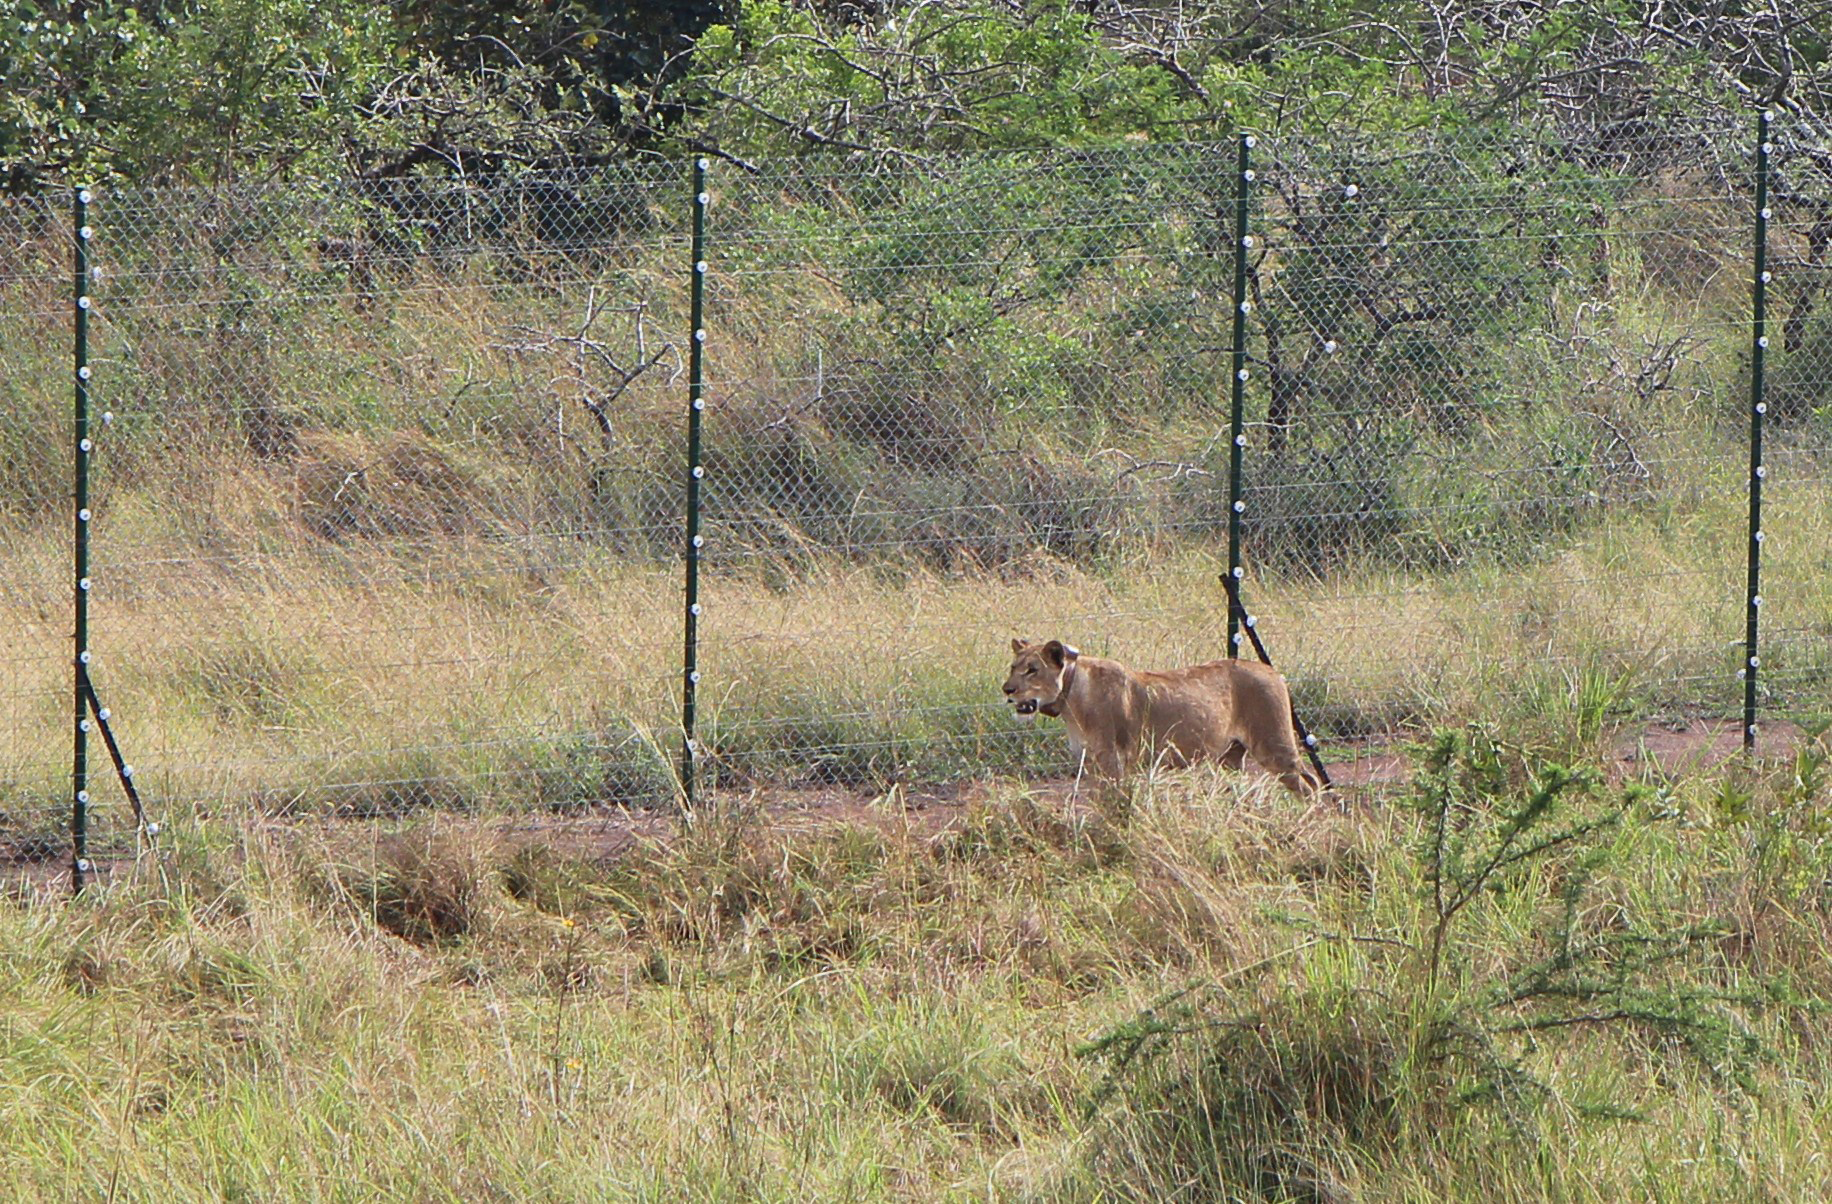 A lion brought from South Africa walks in Akagera National Park in the east of Rwanda on July 1, 2015, after being reintroduced.